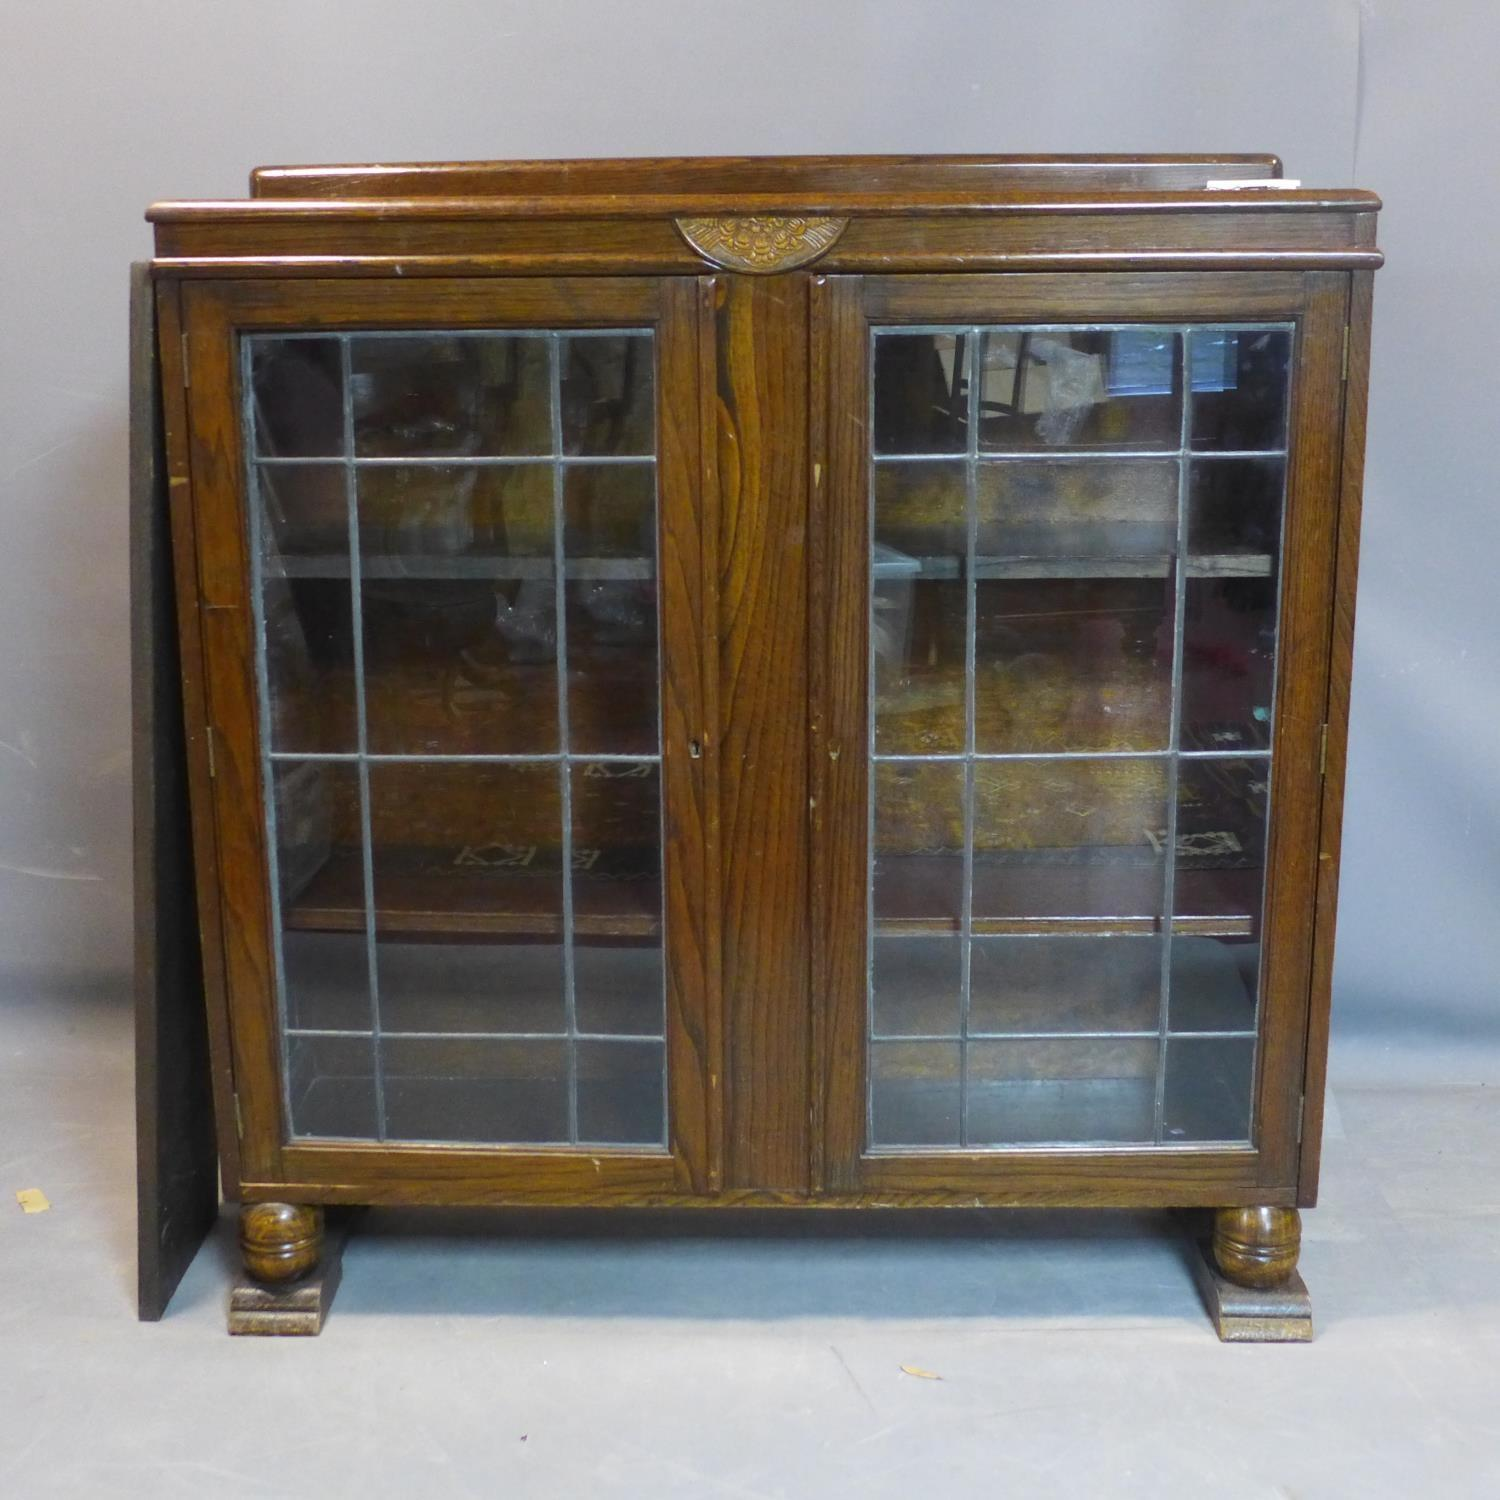 Lot 250 - An early 20th century oak glazed bookcase, with two leaded glass doors enclosing adjustable shelves,